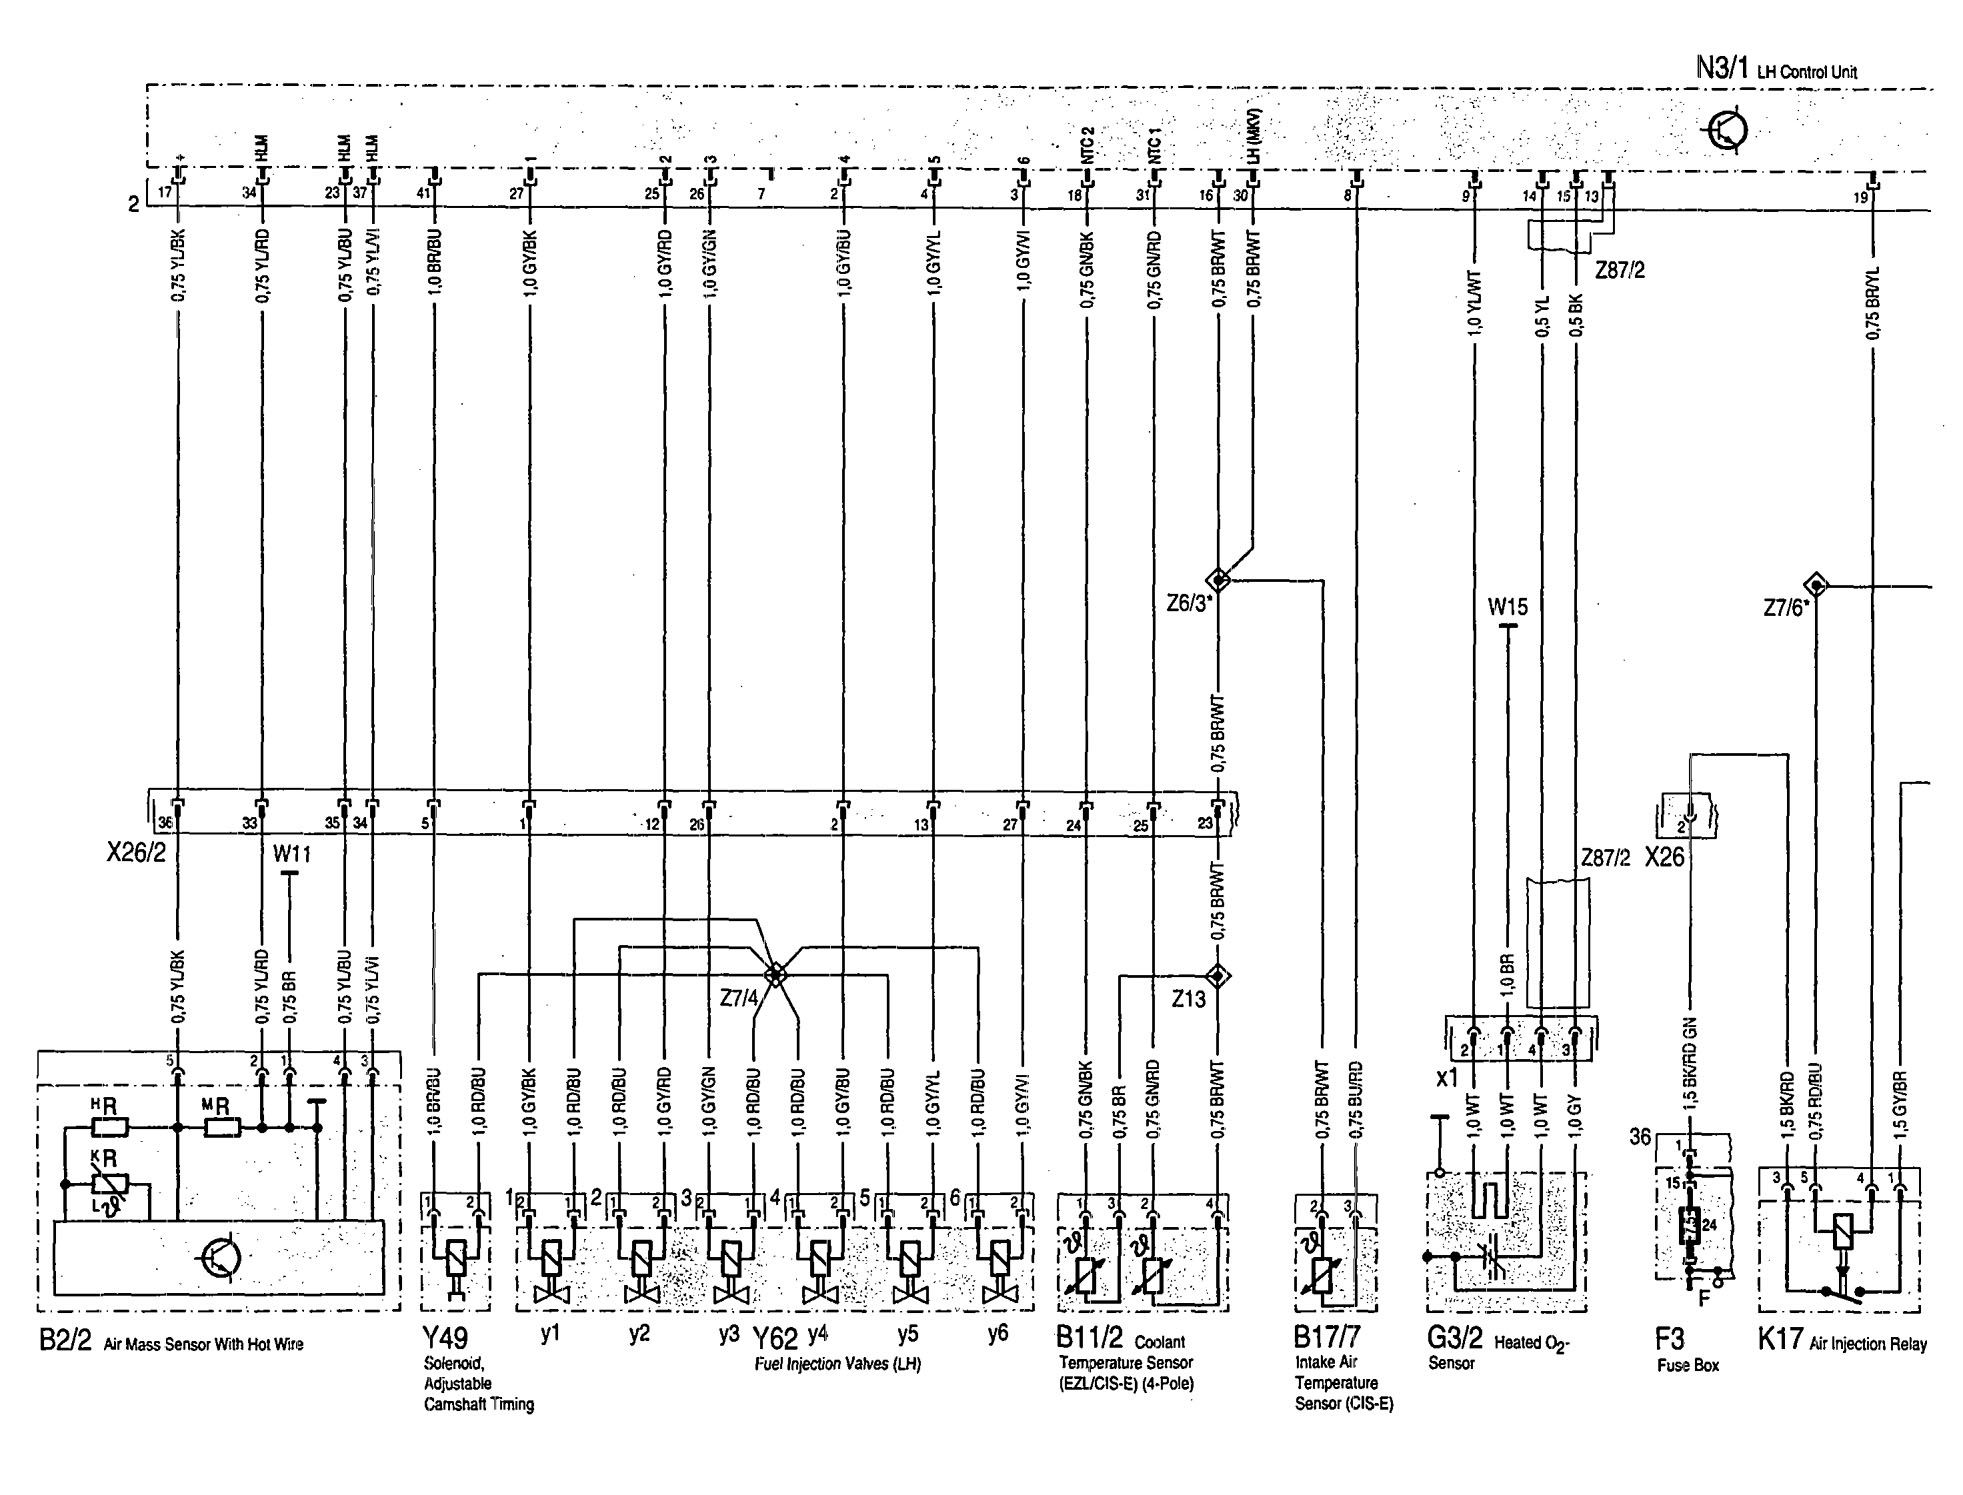 1991 Mercedes Benz Fuse Diagram Trusted Wiring Diagrams 1992 300se Auto Electrical U2022 2008 C300 Box Chart